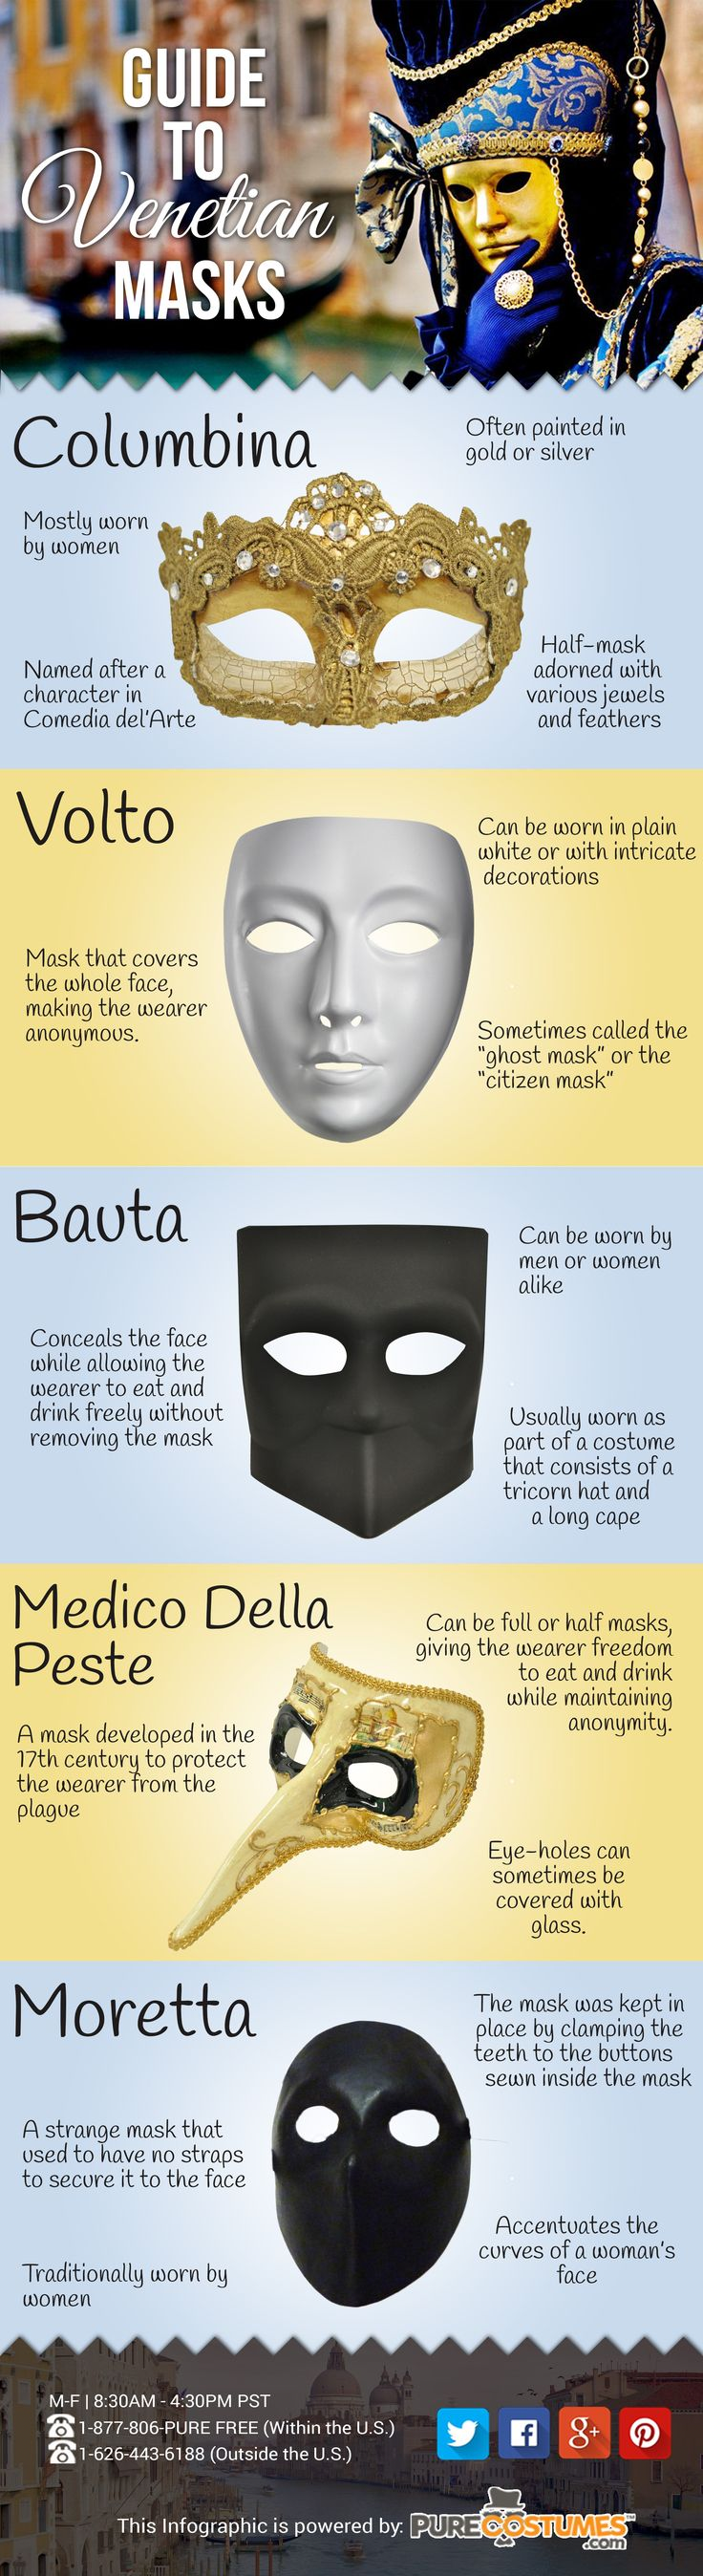 #Infographic: A Guide to Venetian Masks #mardigras                              …